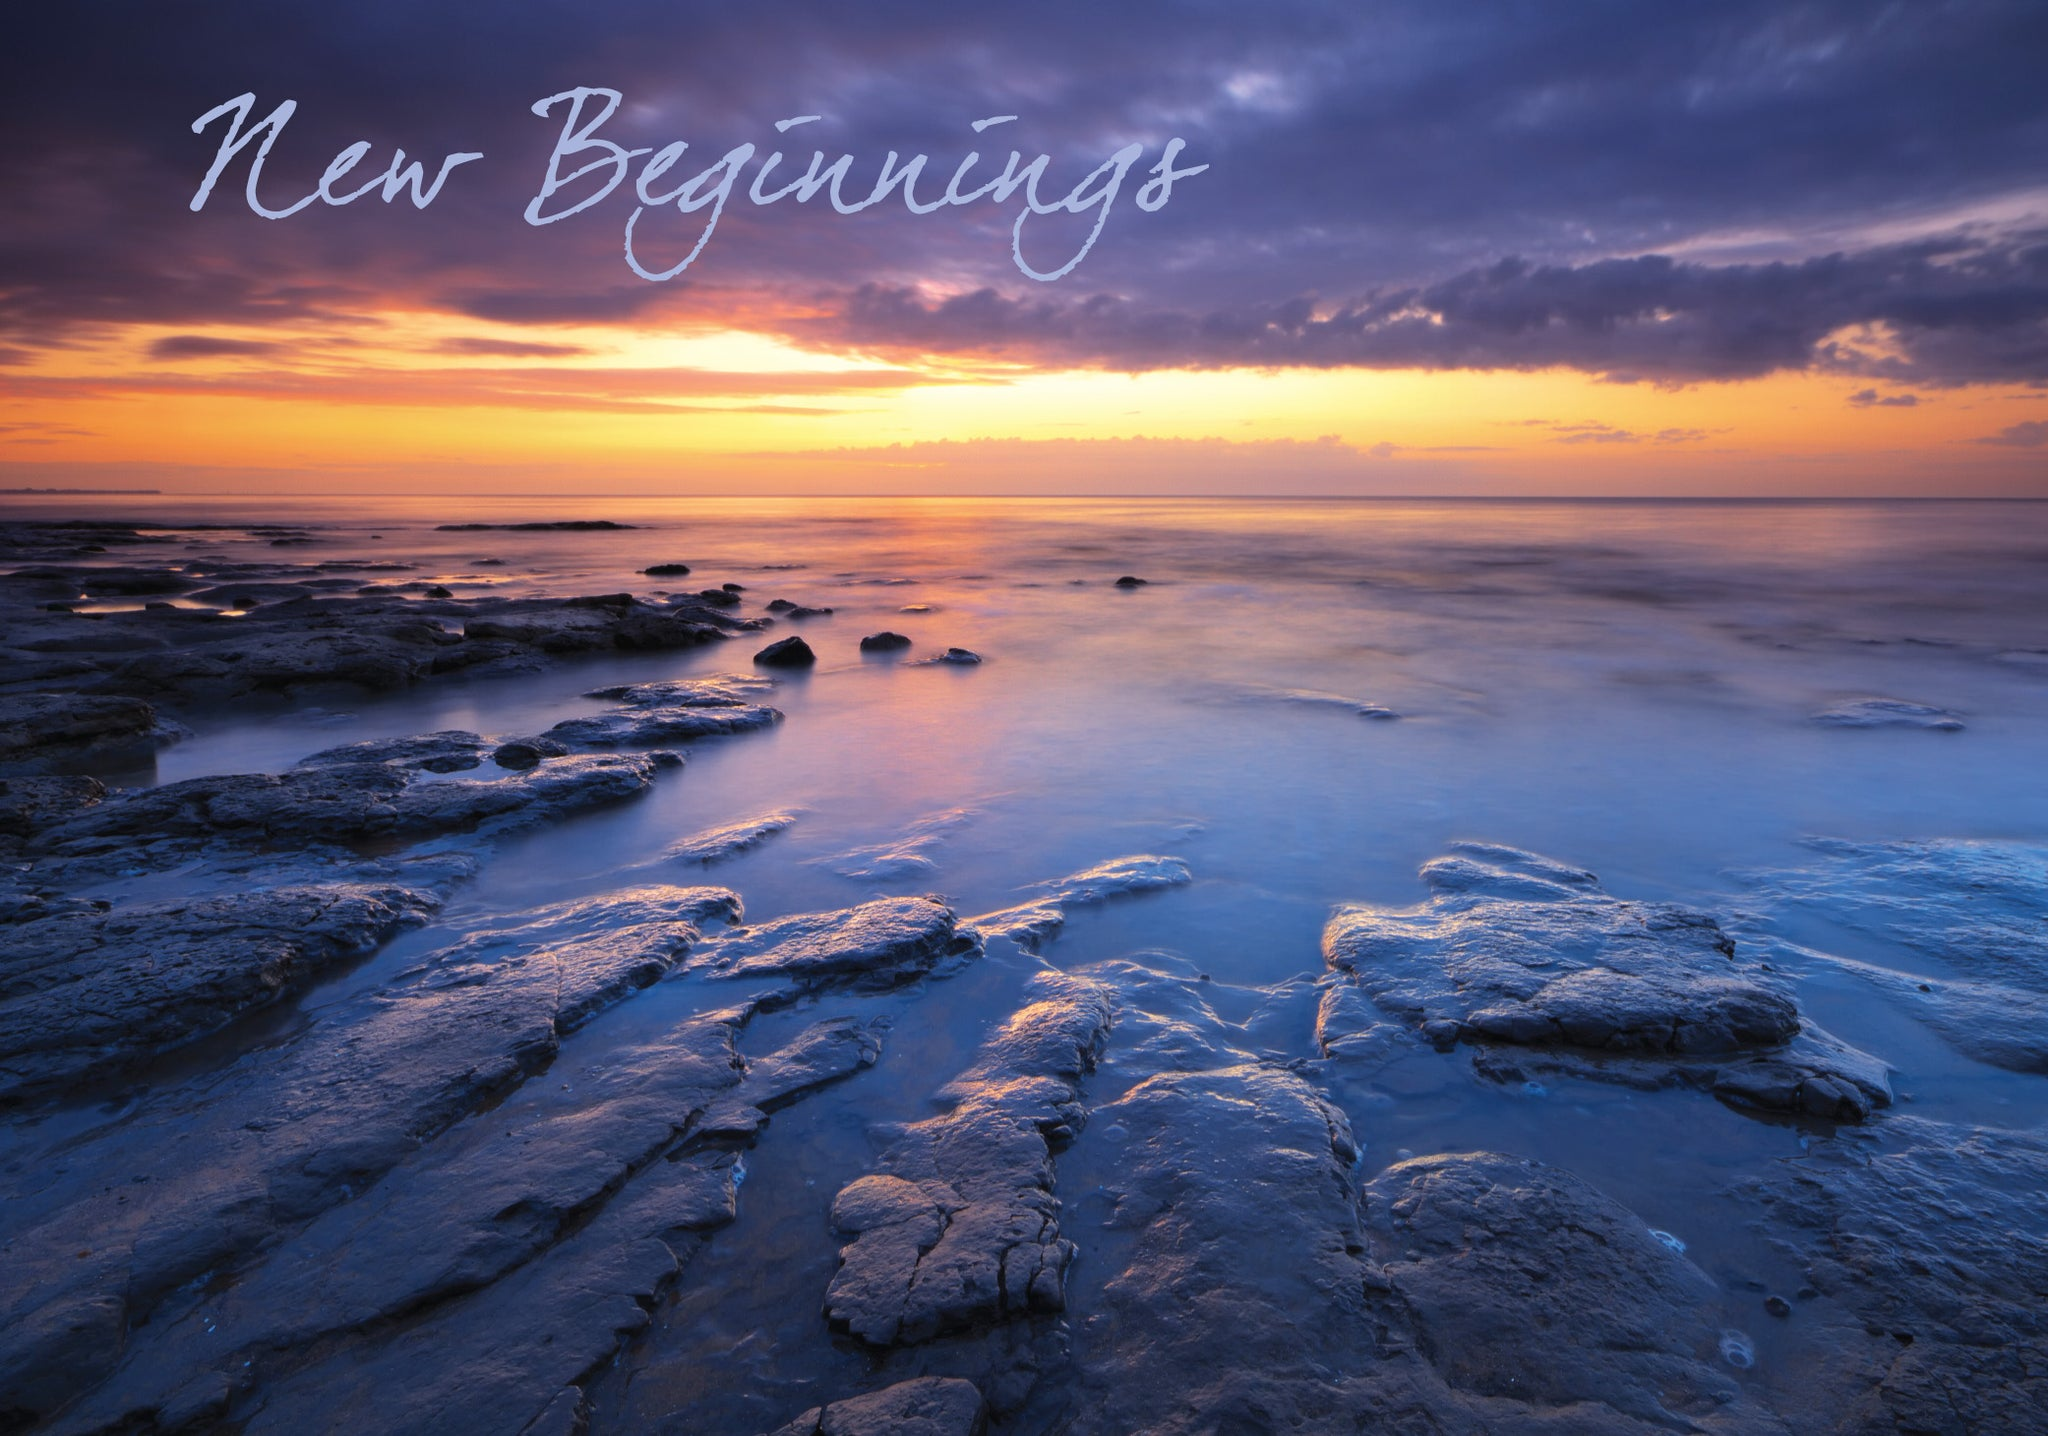 New Beginnings - GlossNew Beginnings - Gloss